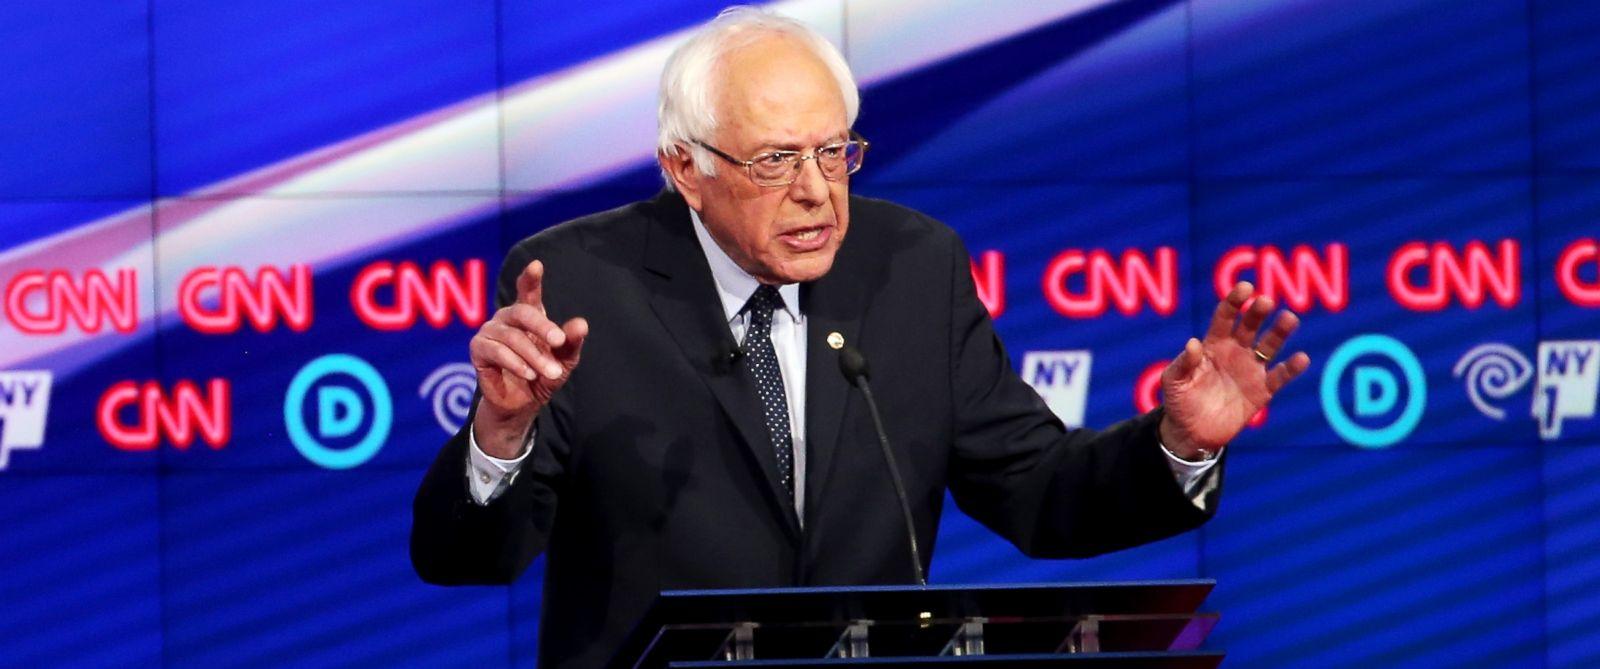 Bernie Sanders' Debate Remarks on Israel Still Resonating